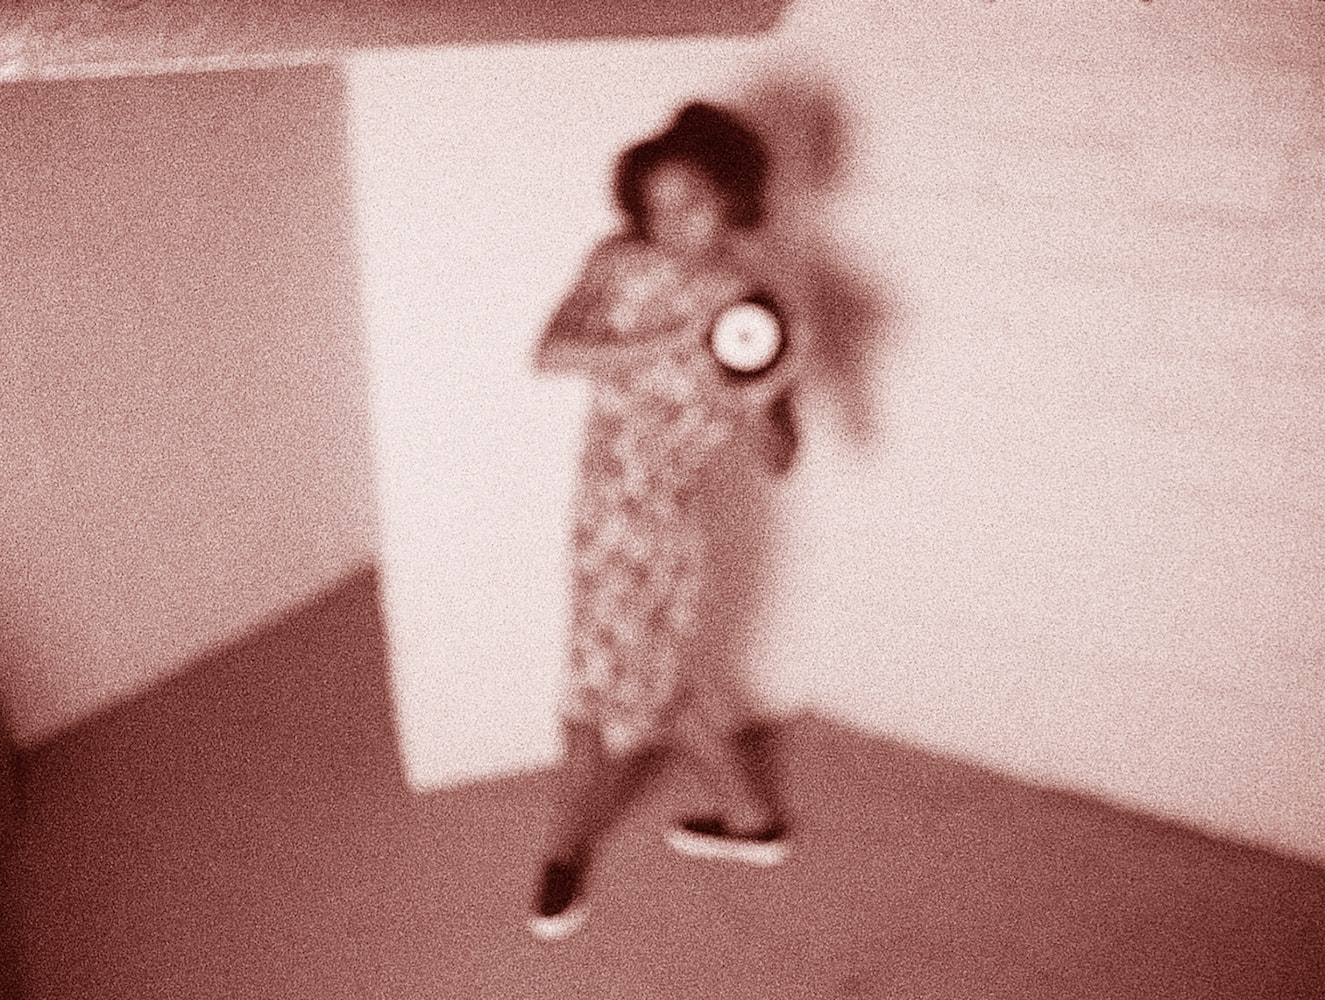 Blurry image of woman in corner holding what appears to be a clock